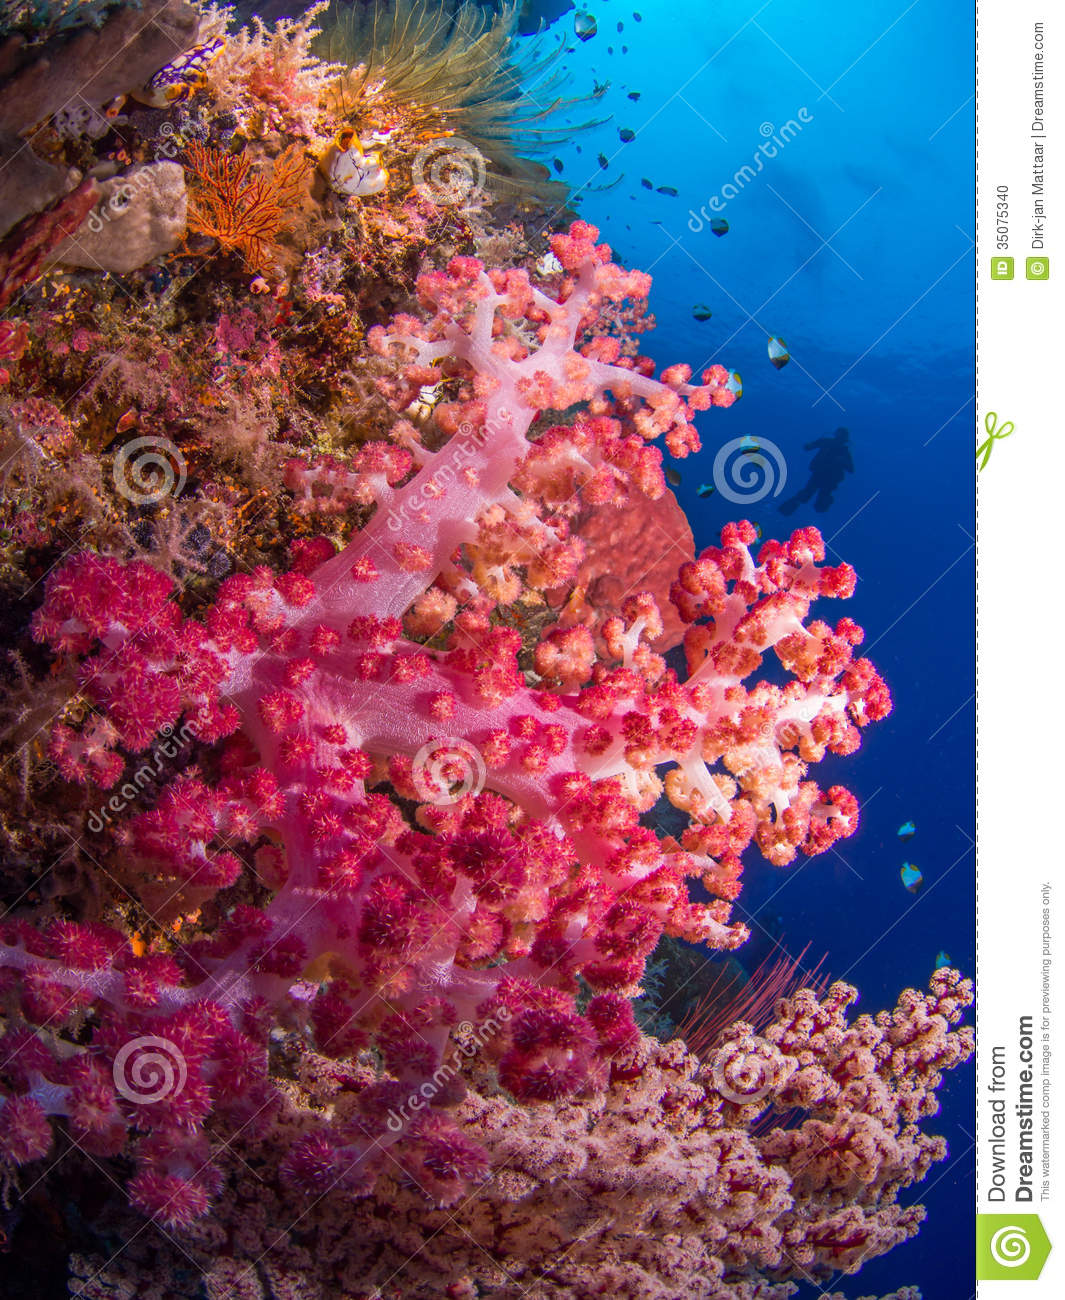 Soft corals stock photo. Image of scuba, blue, nature - 35075340